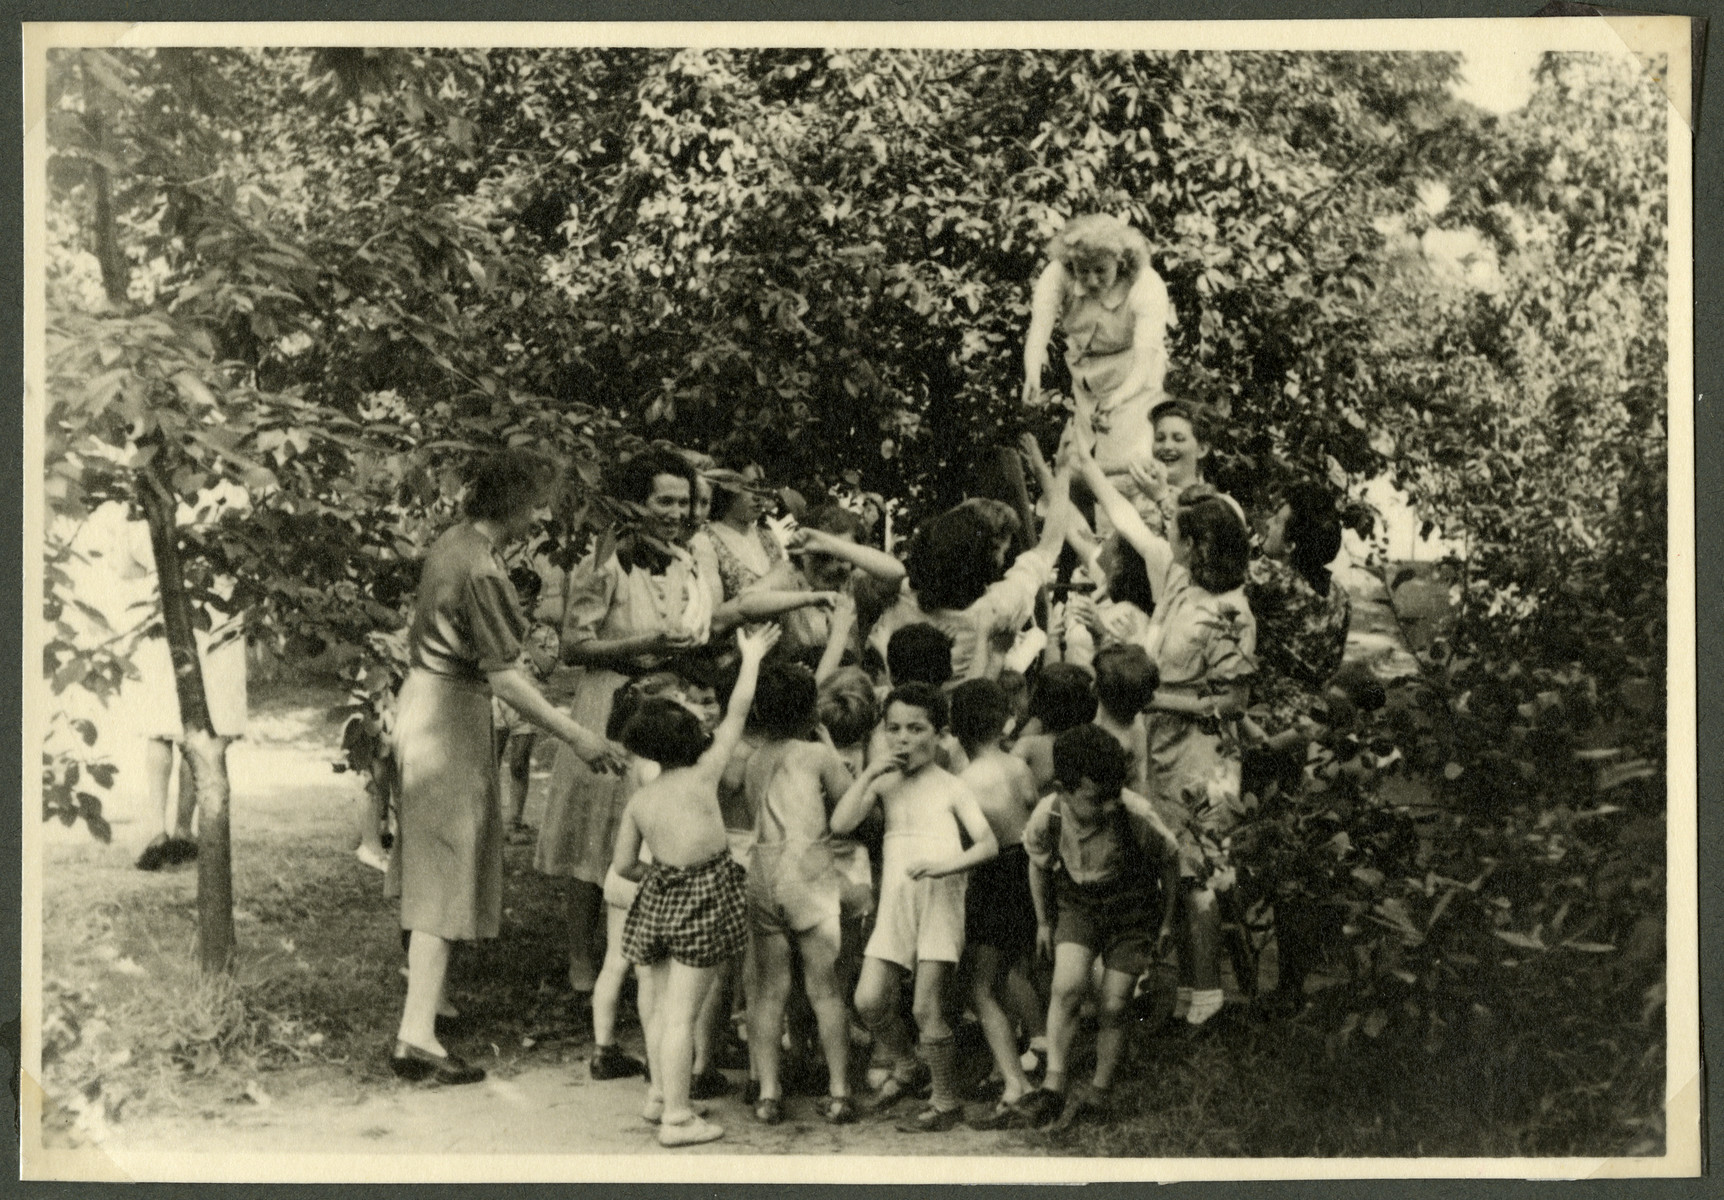 Jewish children from the Nos Petits children's home visit a fruit orchard.